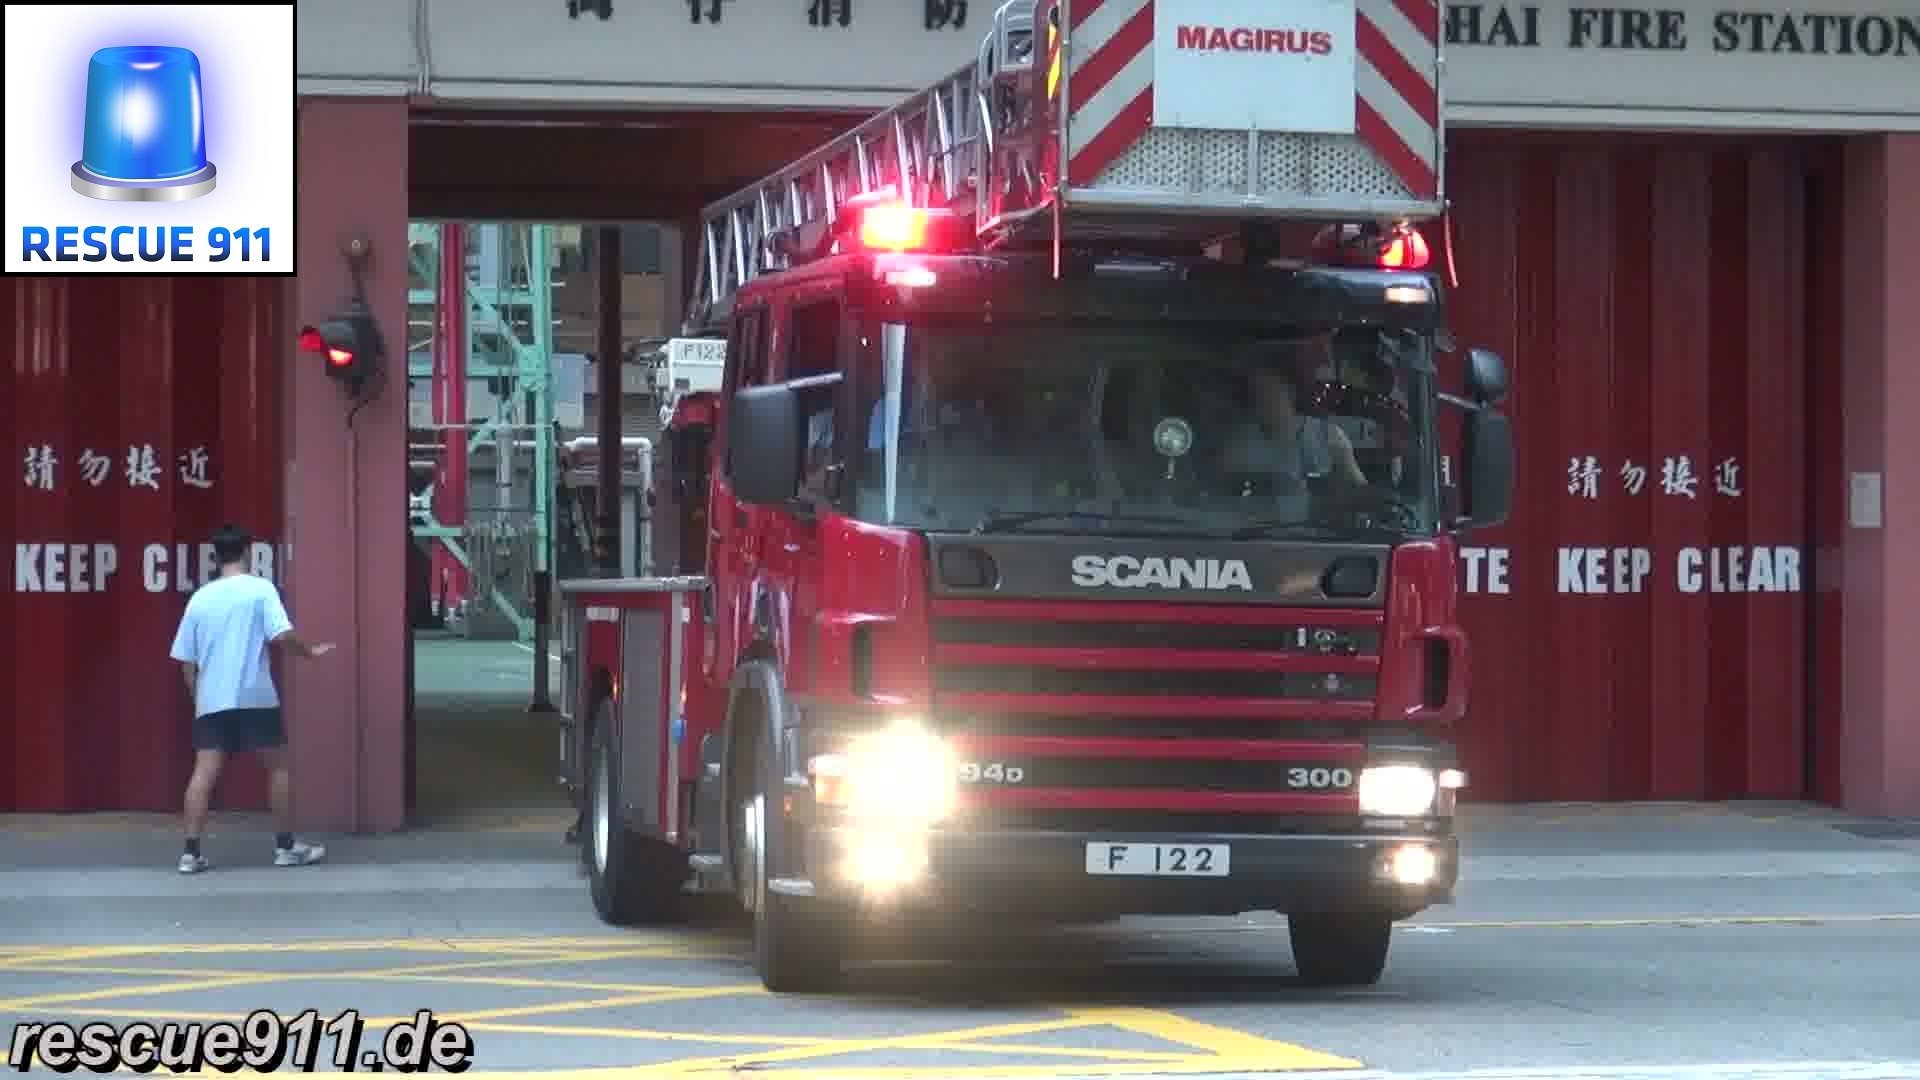 Turntable Ladder HKFSD Wan Chai Fire Station (stream)